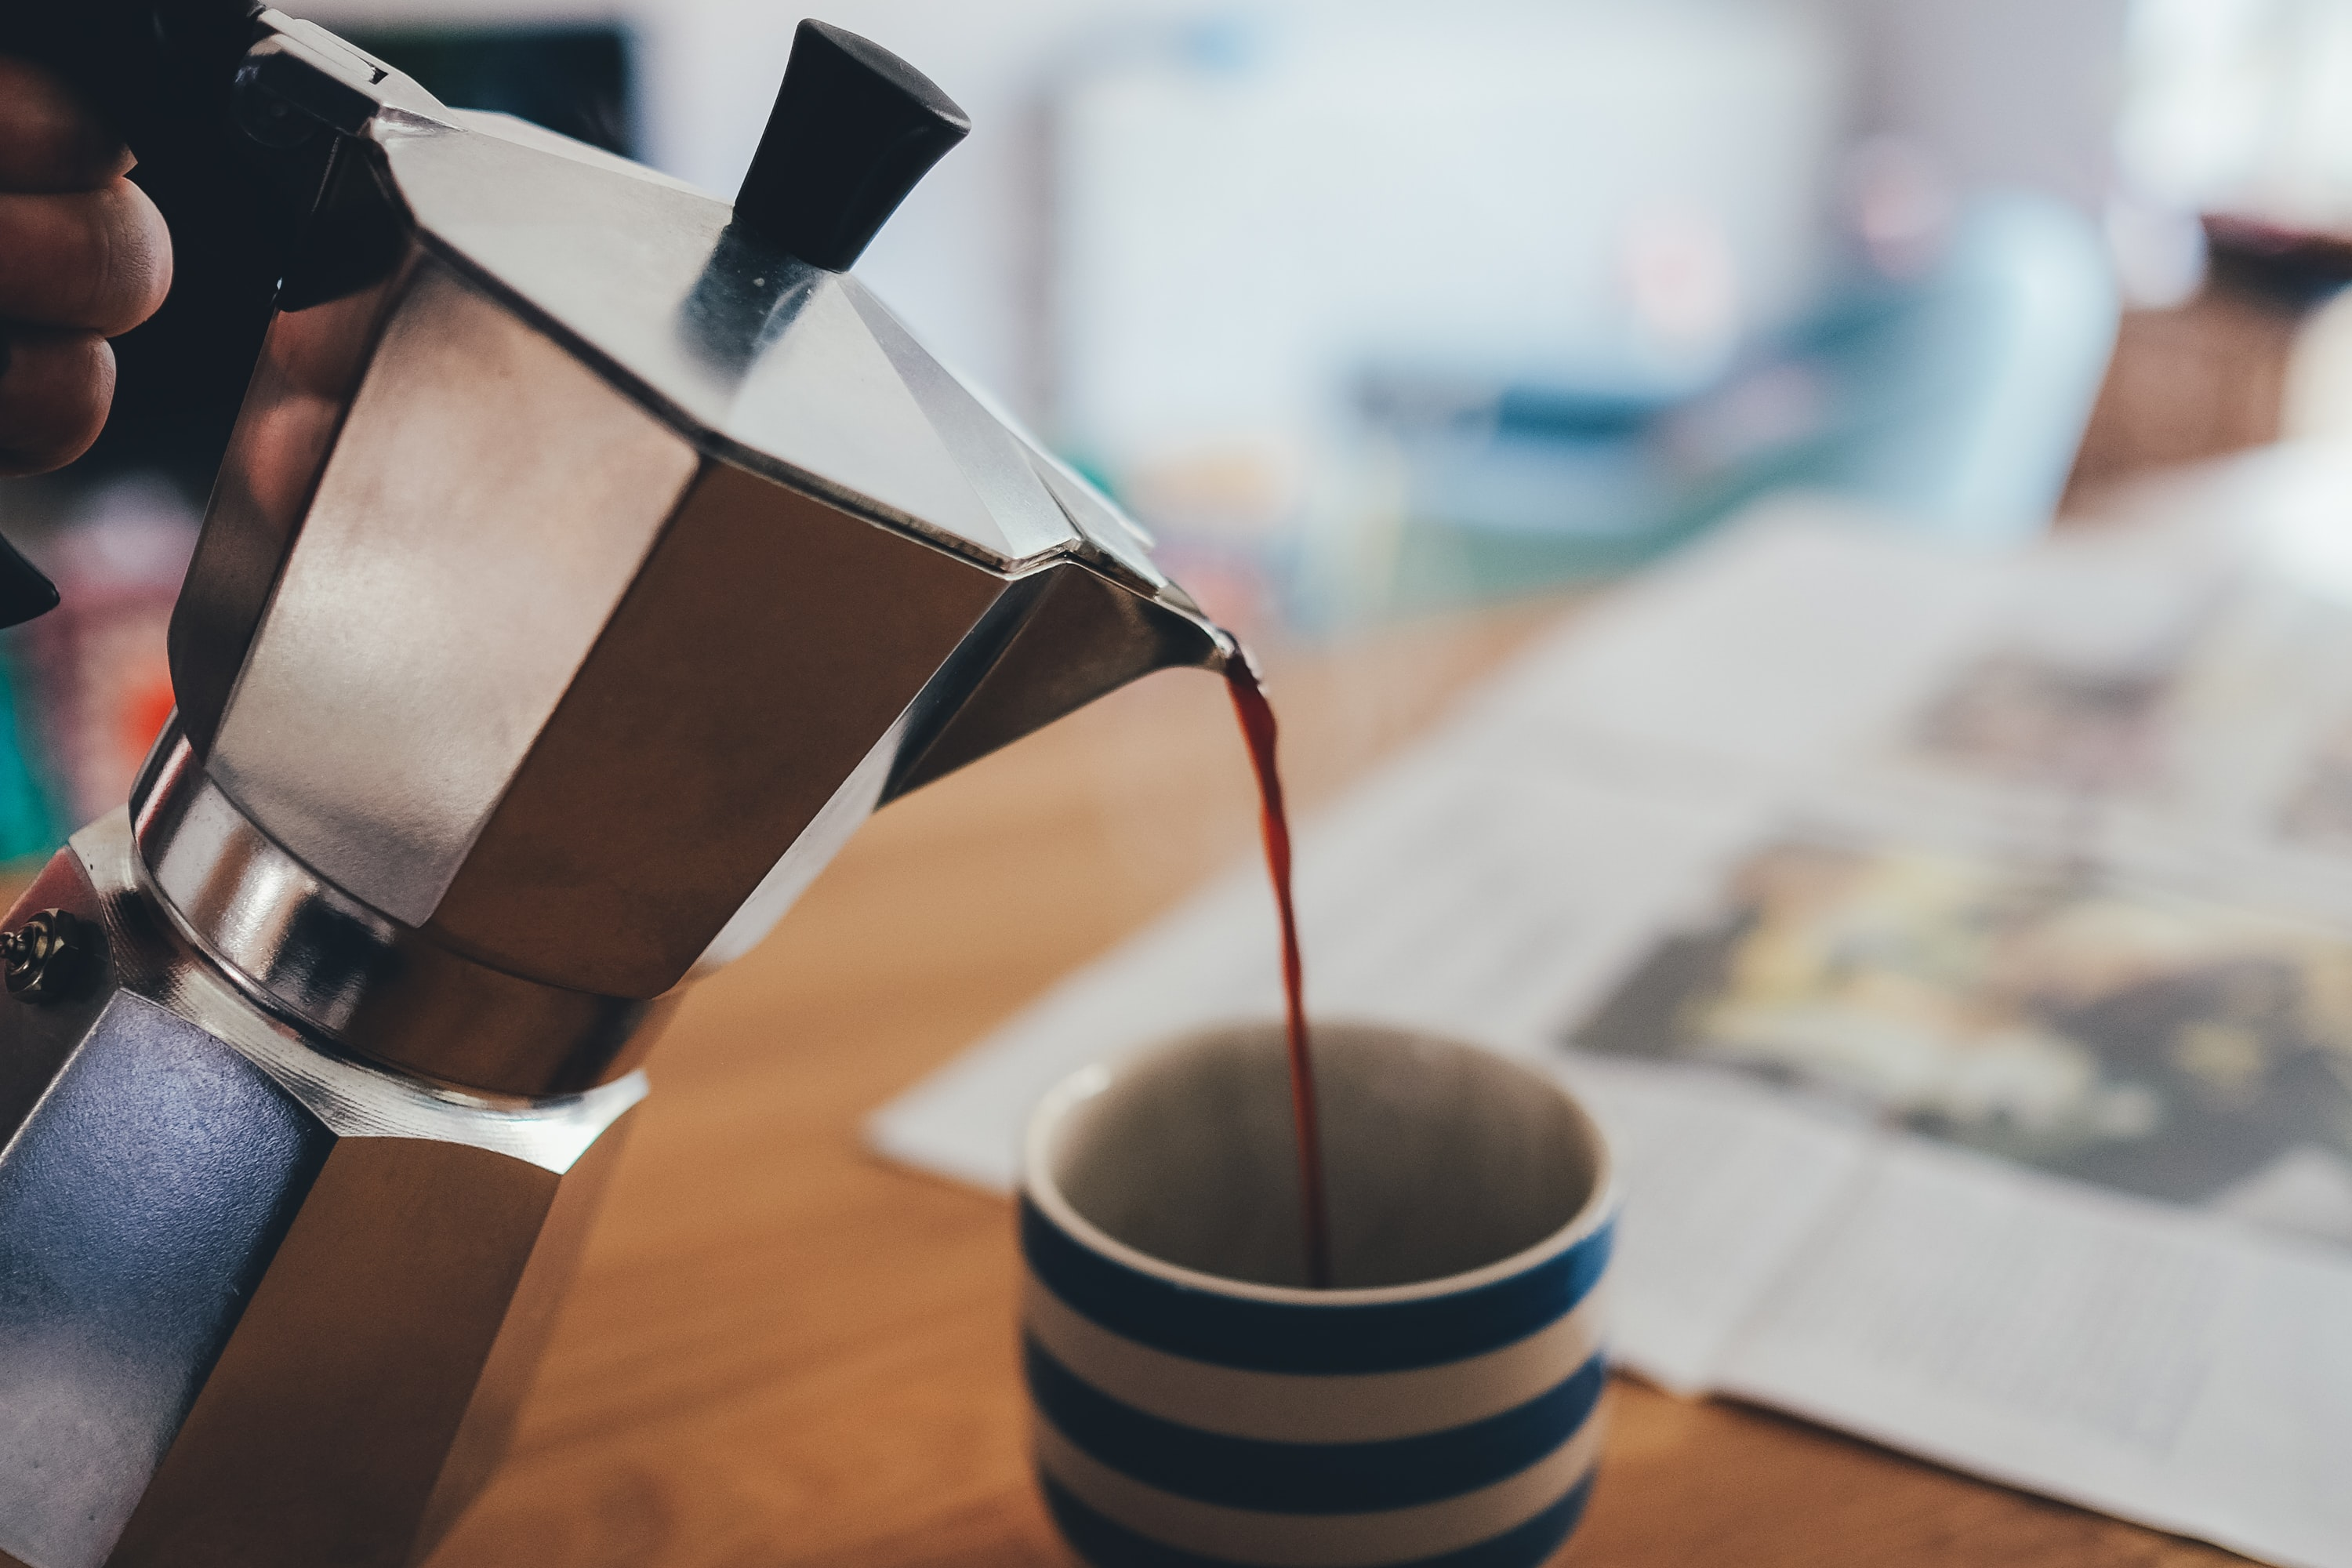 A person pouring coffee from a steel kettle into a mug